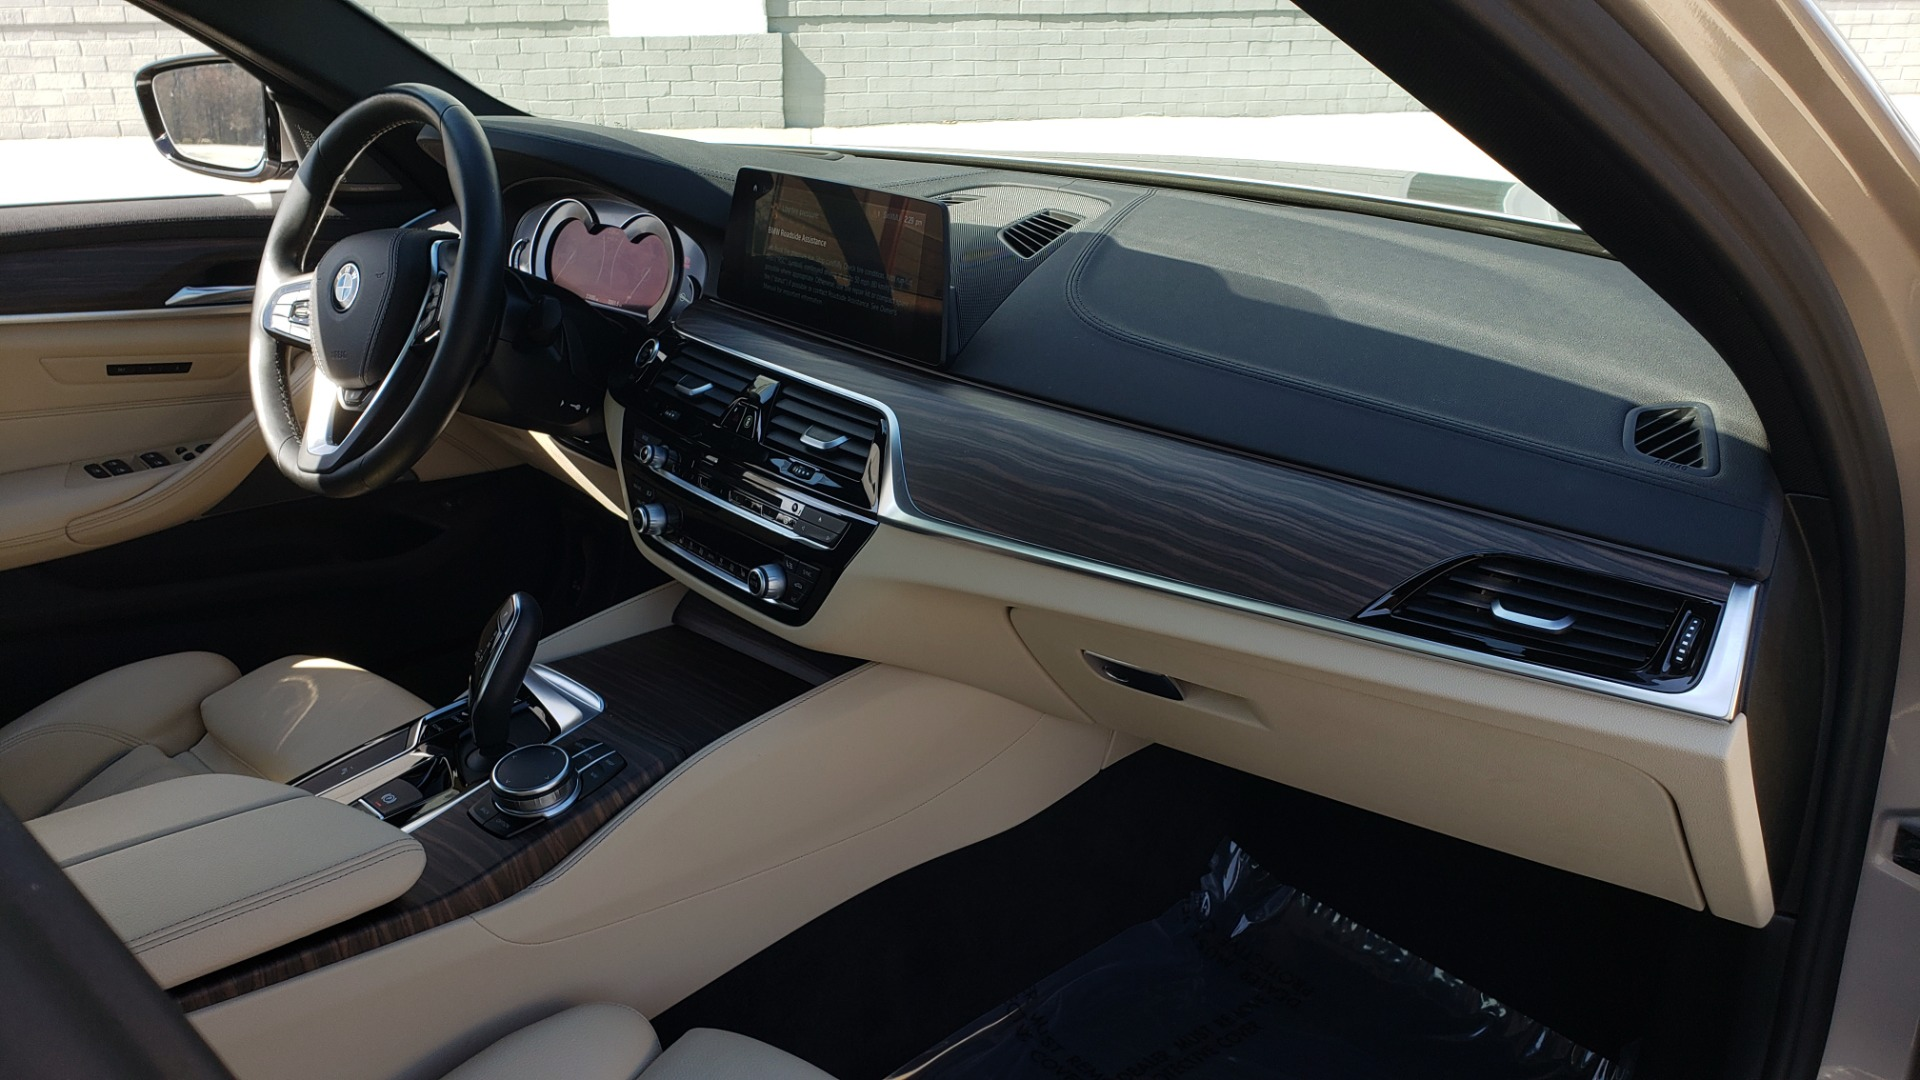 Used 2018 BMW 5 SERIES 540IXDRIVE PREMIUM / DRVR ASST PLUS / LUX PKG / APPLE CARPLAY for sale Sold at Formula Imports in Charlotte NC 28227 61